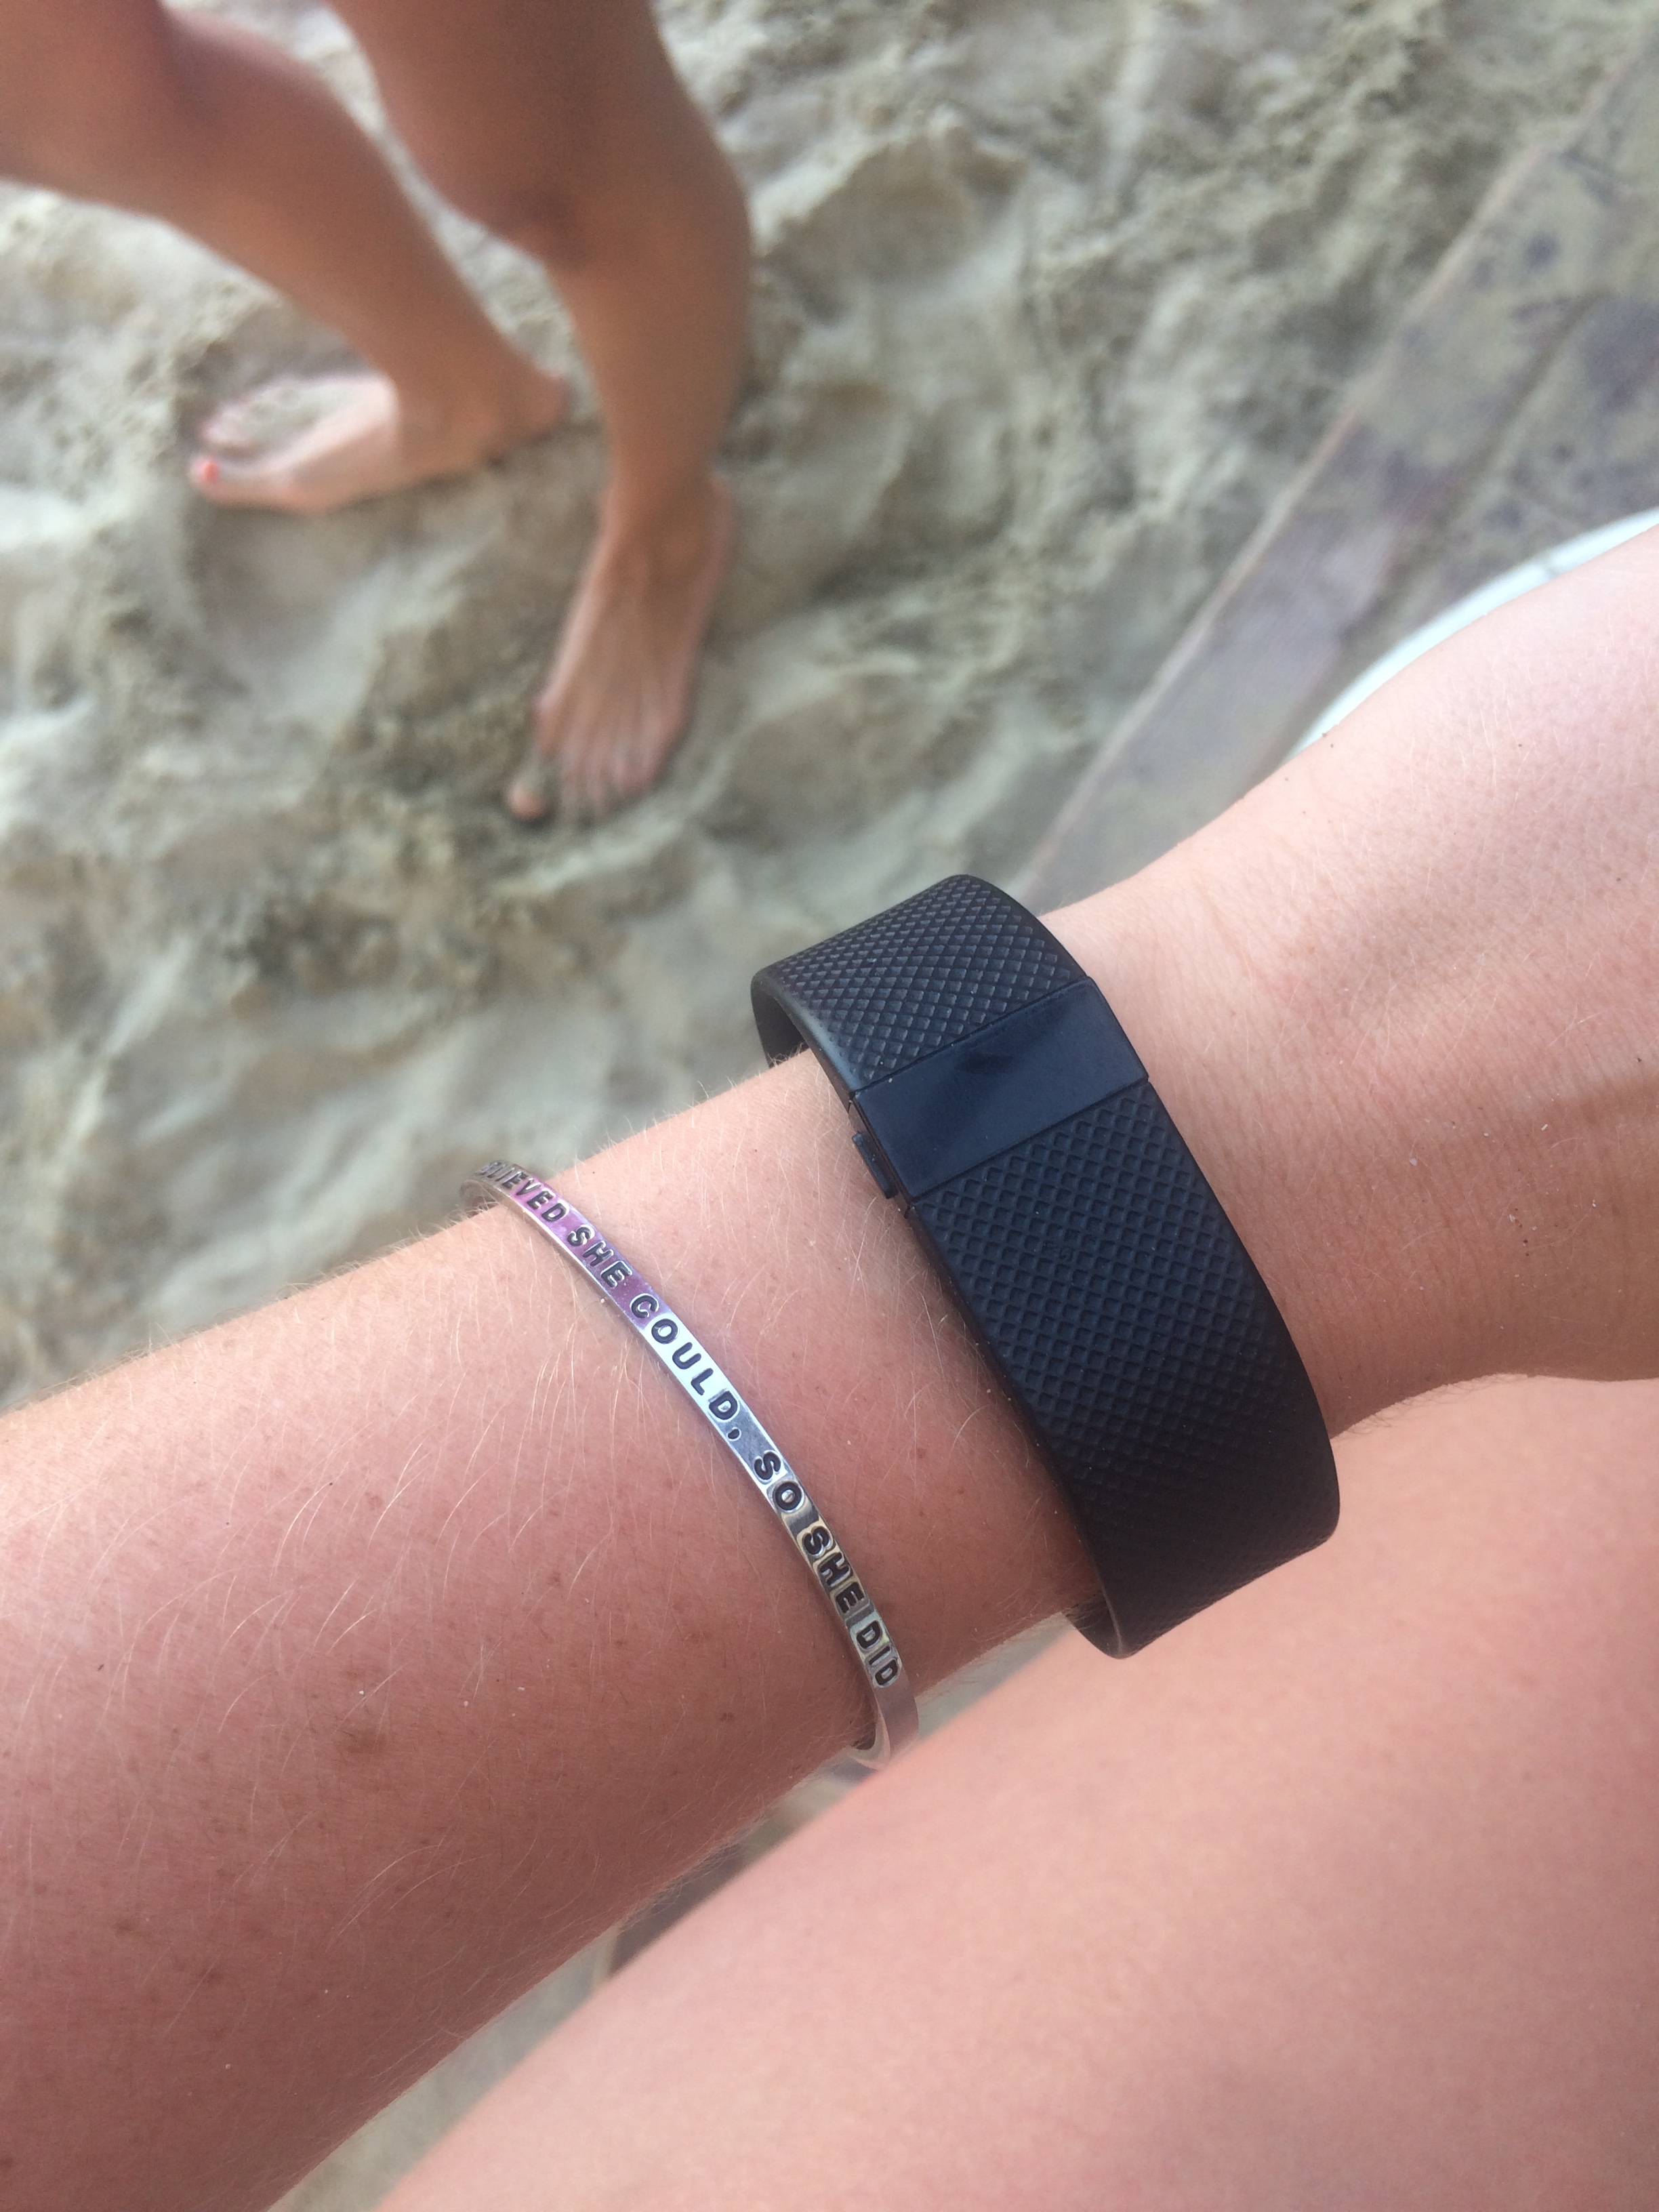 "On the beach with my amazingly fitting Mantra Band: ""She believed she could, so she did."" (love)"